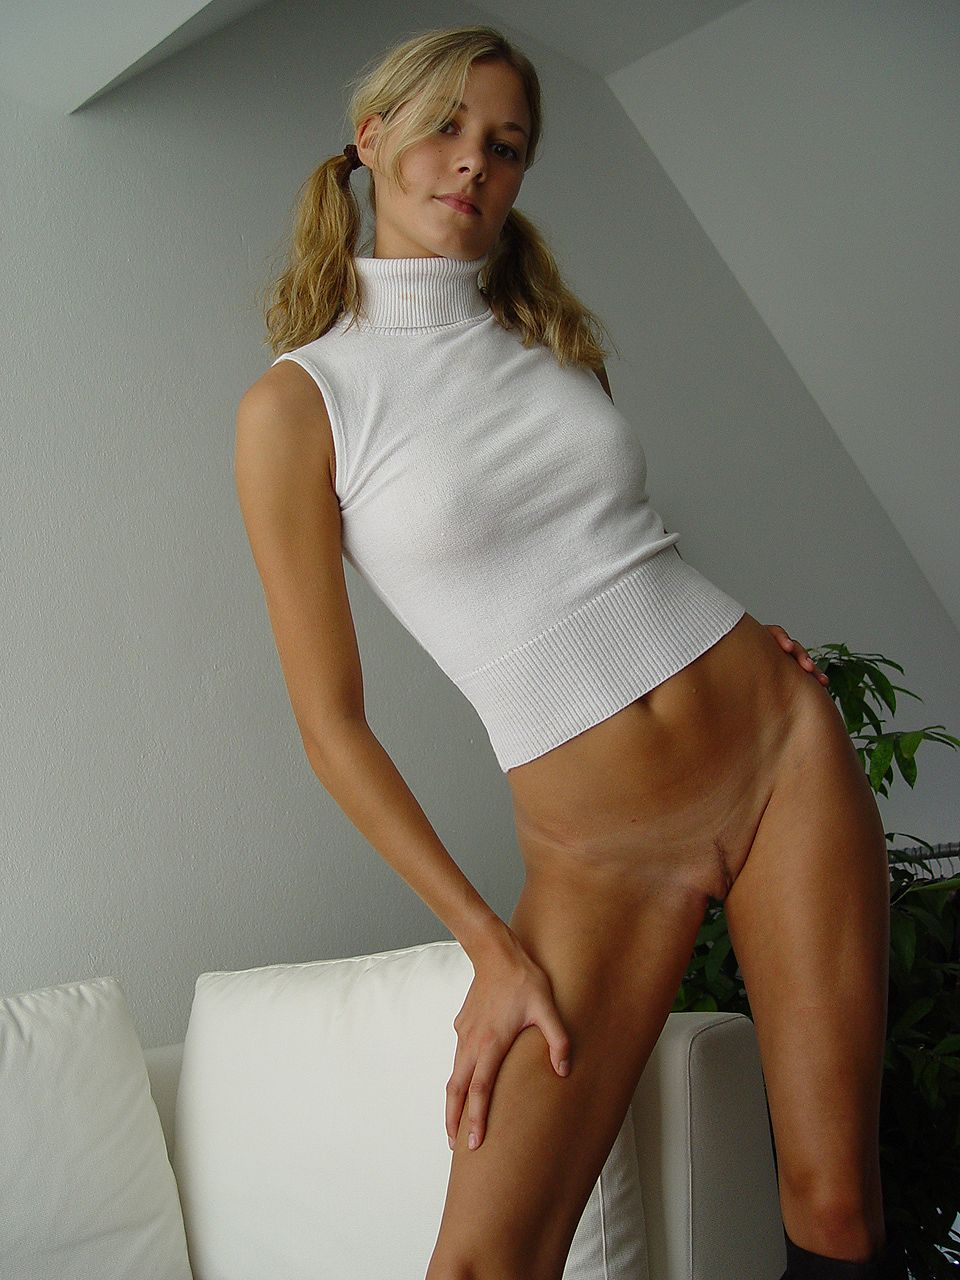 blonde-amateur-bottomless-naked-13